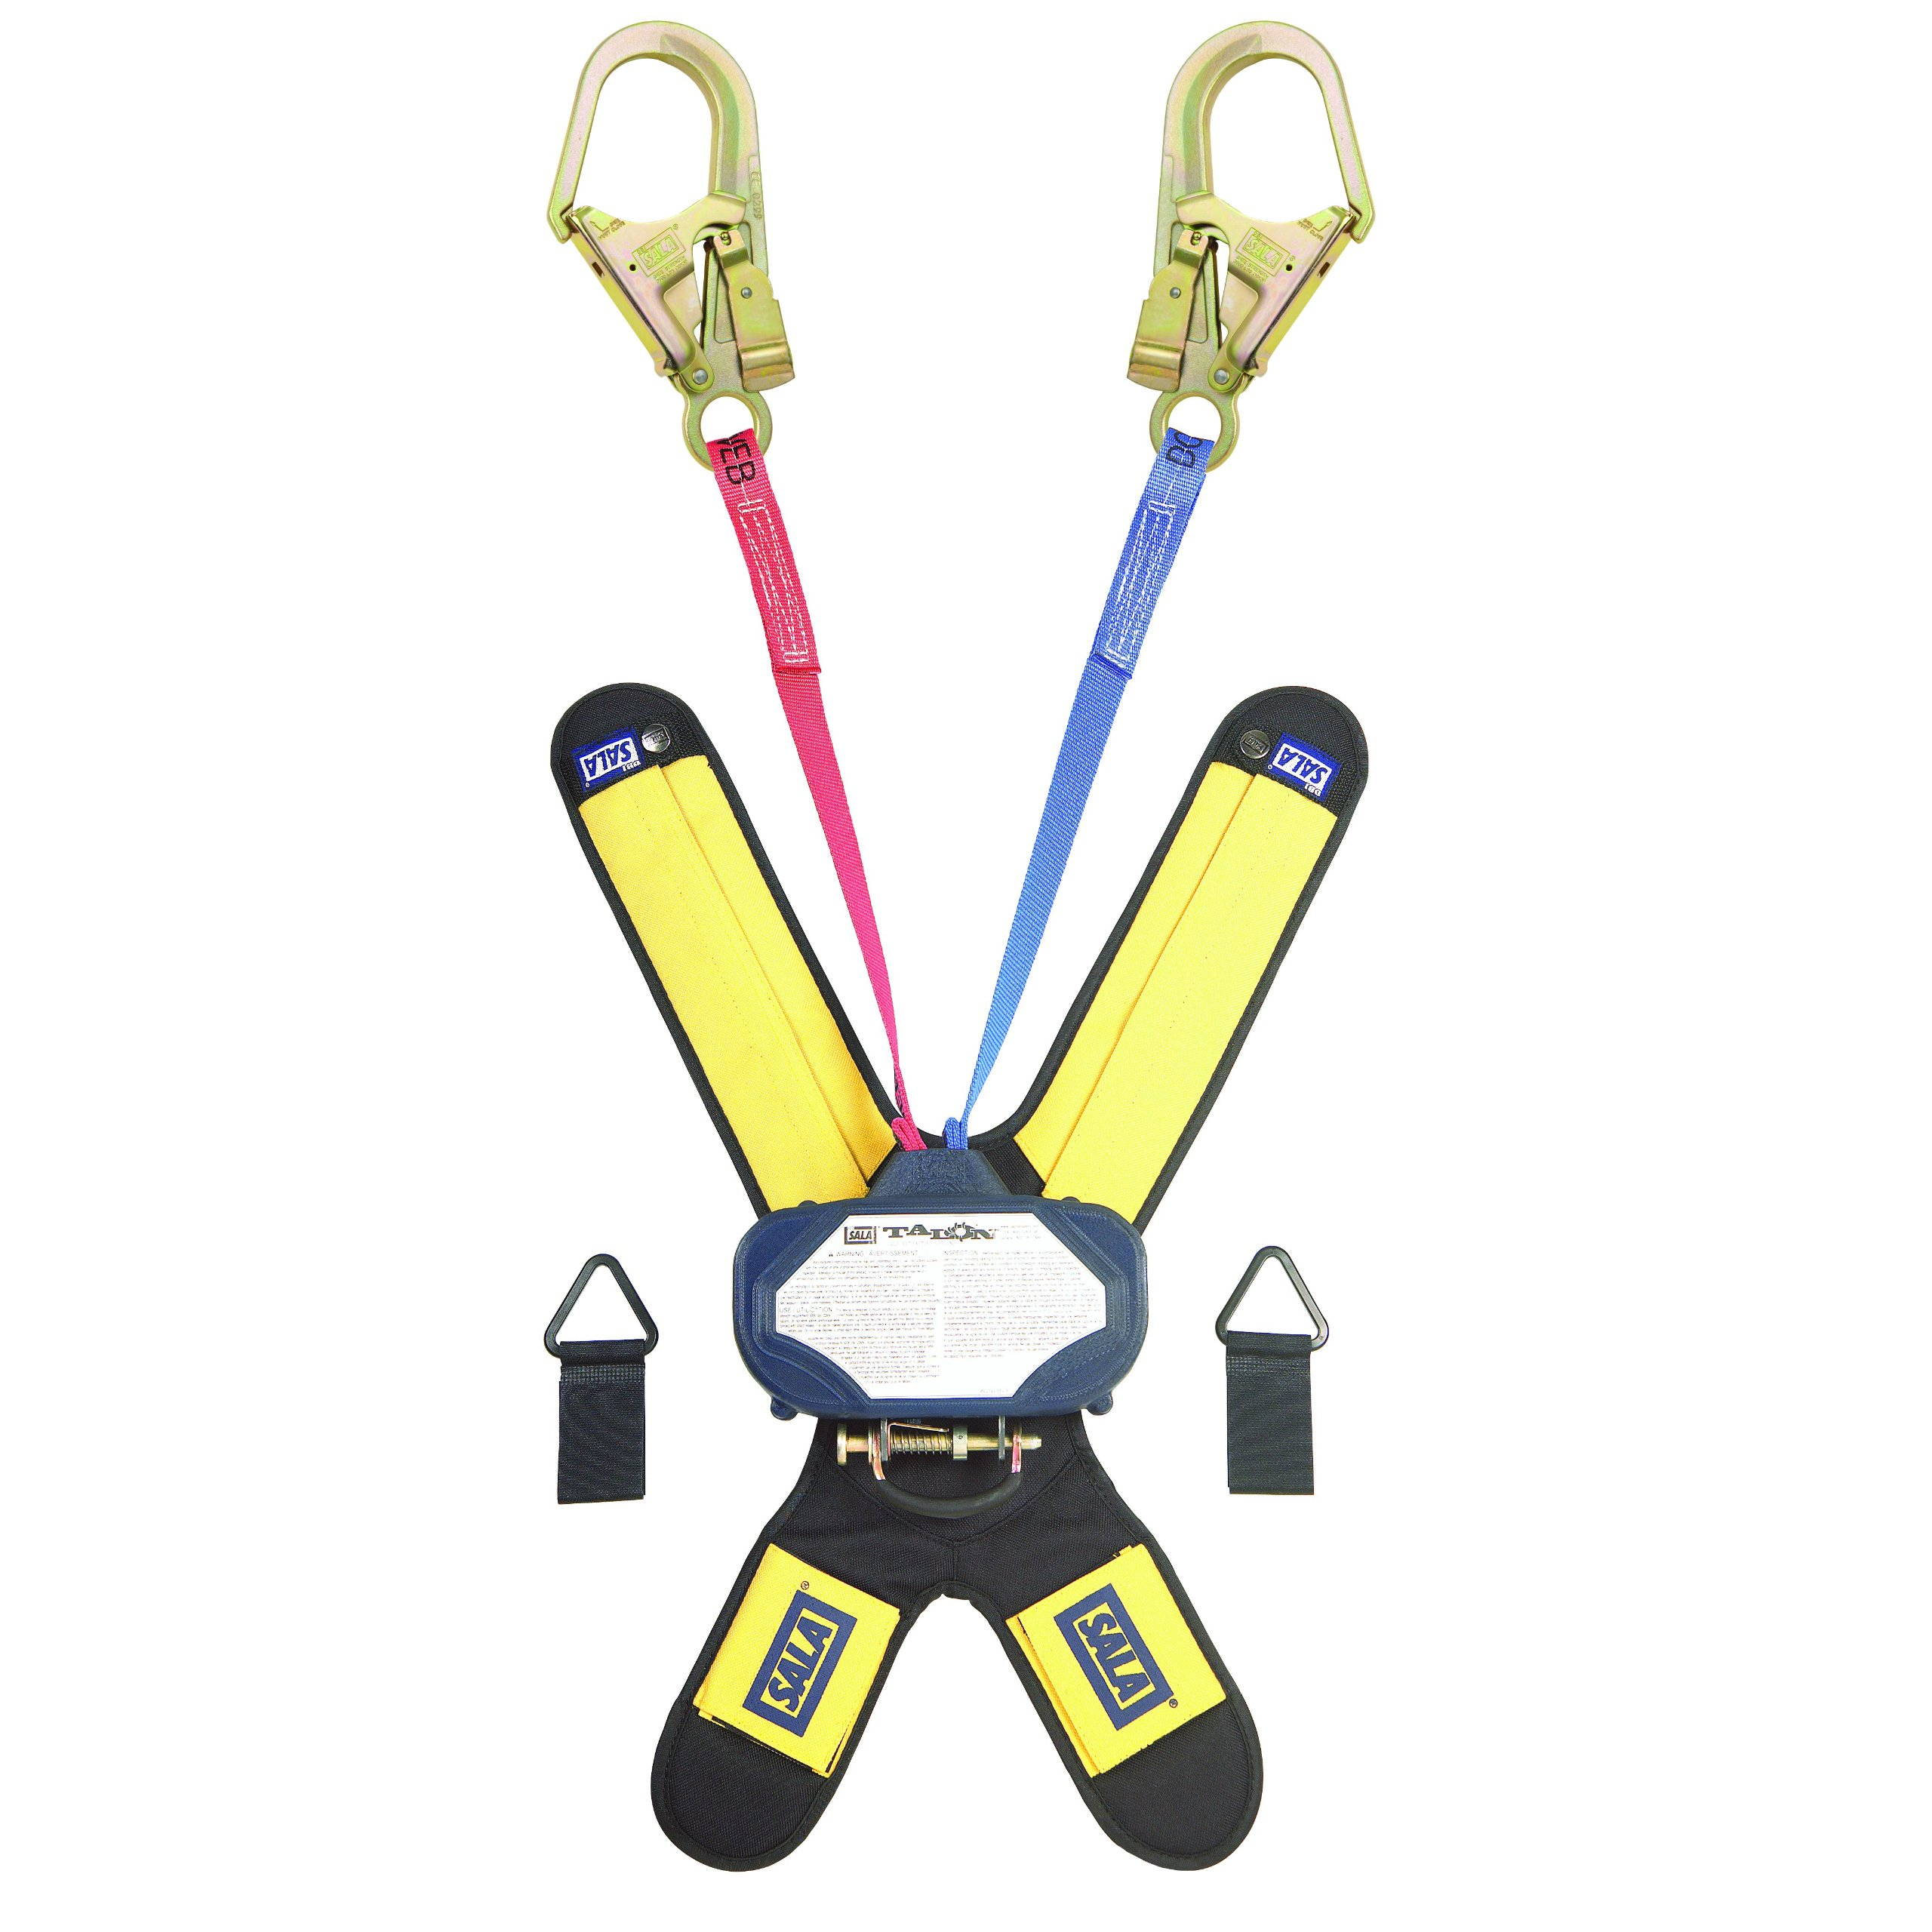 3M DBI-SALA Talon 3102006 SRL, 6-Foot Twin-Leg, 1 Leg Red, 1 Leg Blue Quick Connector for Harness Mount, Steel Rebar Hooks, Navy/Red/Blue by 3M Fall Protection Business (Image #1)